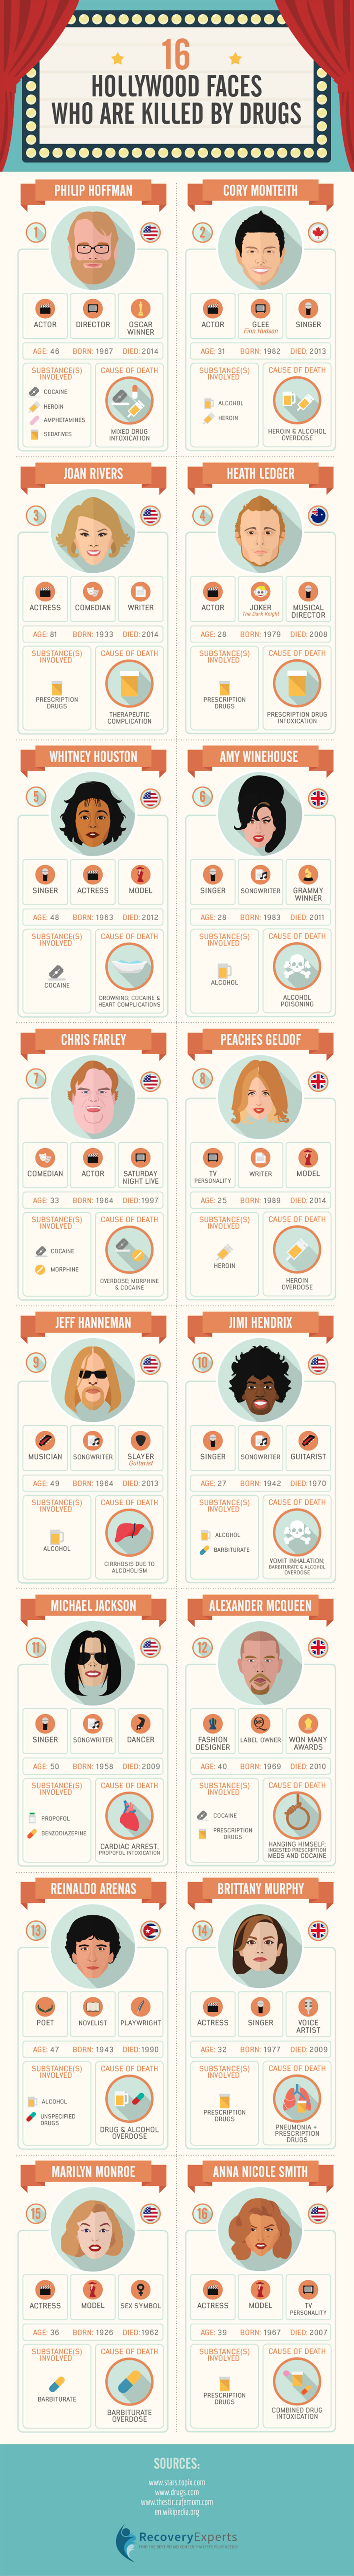 Celebrity Faces Who Are Killed by Drugs Infographic